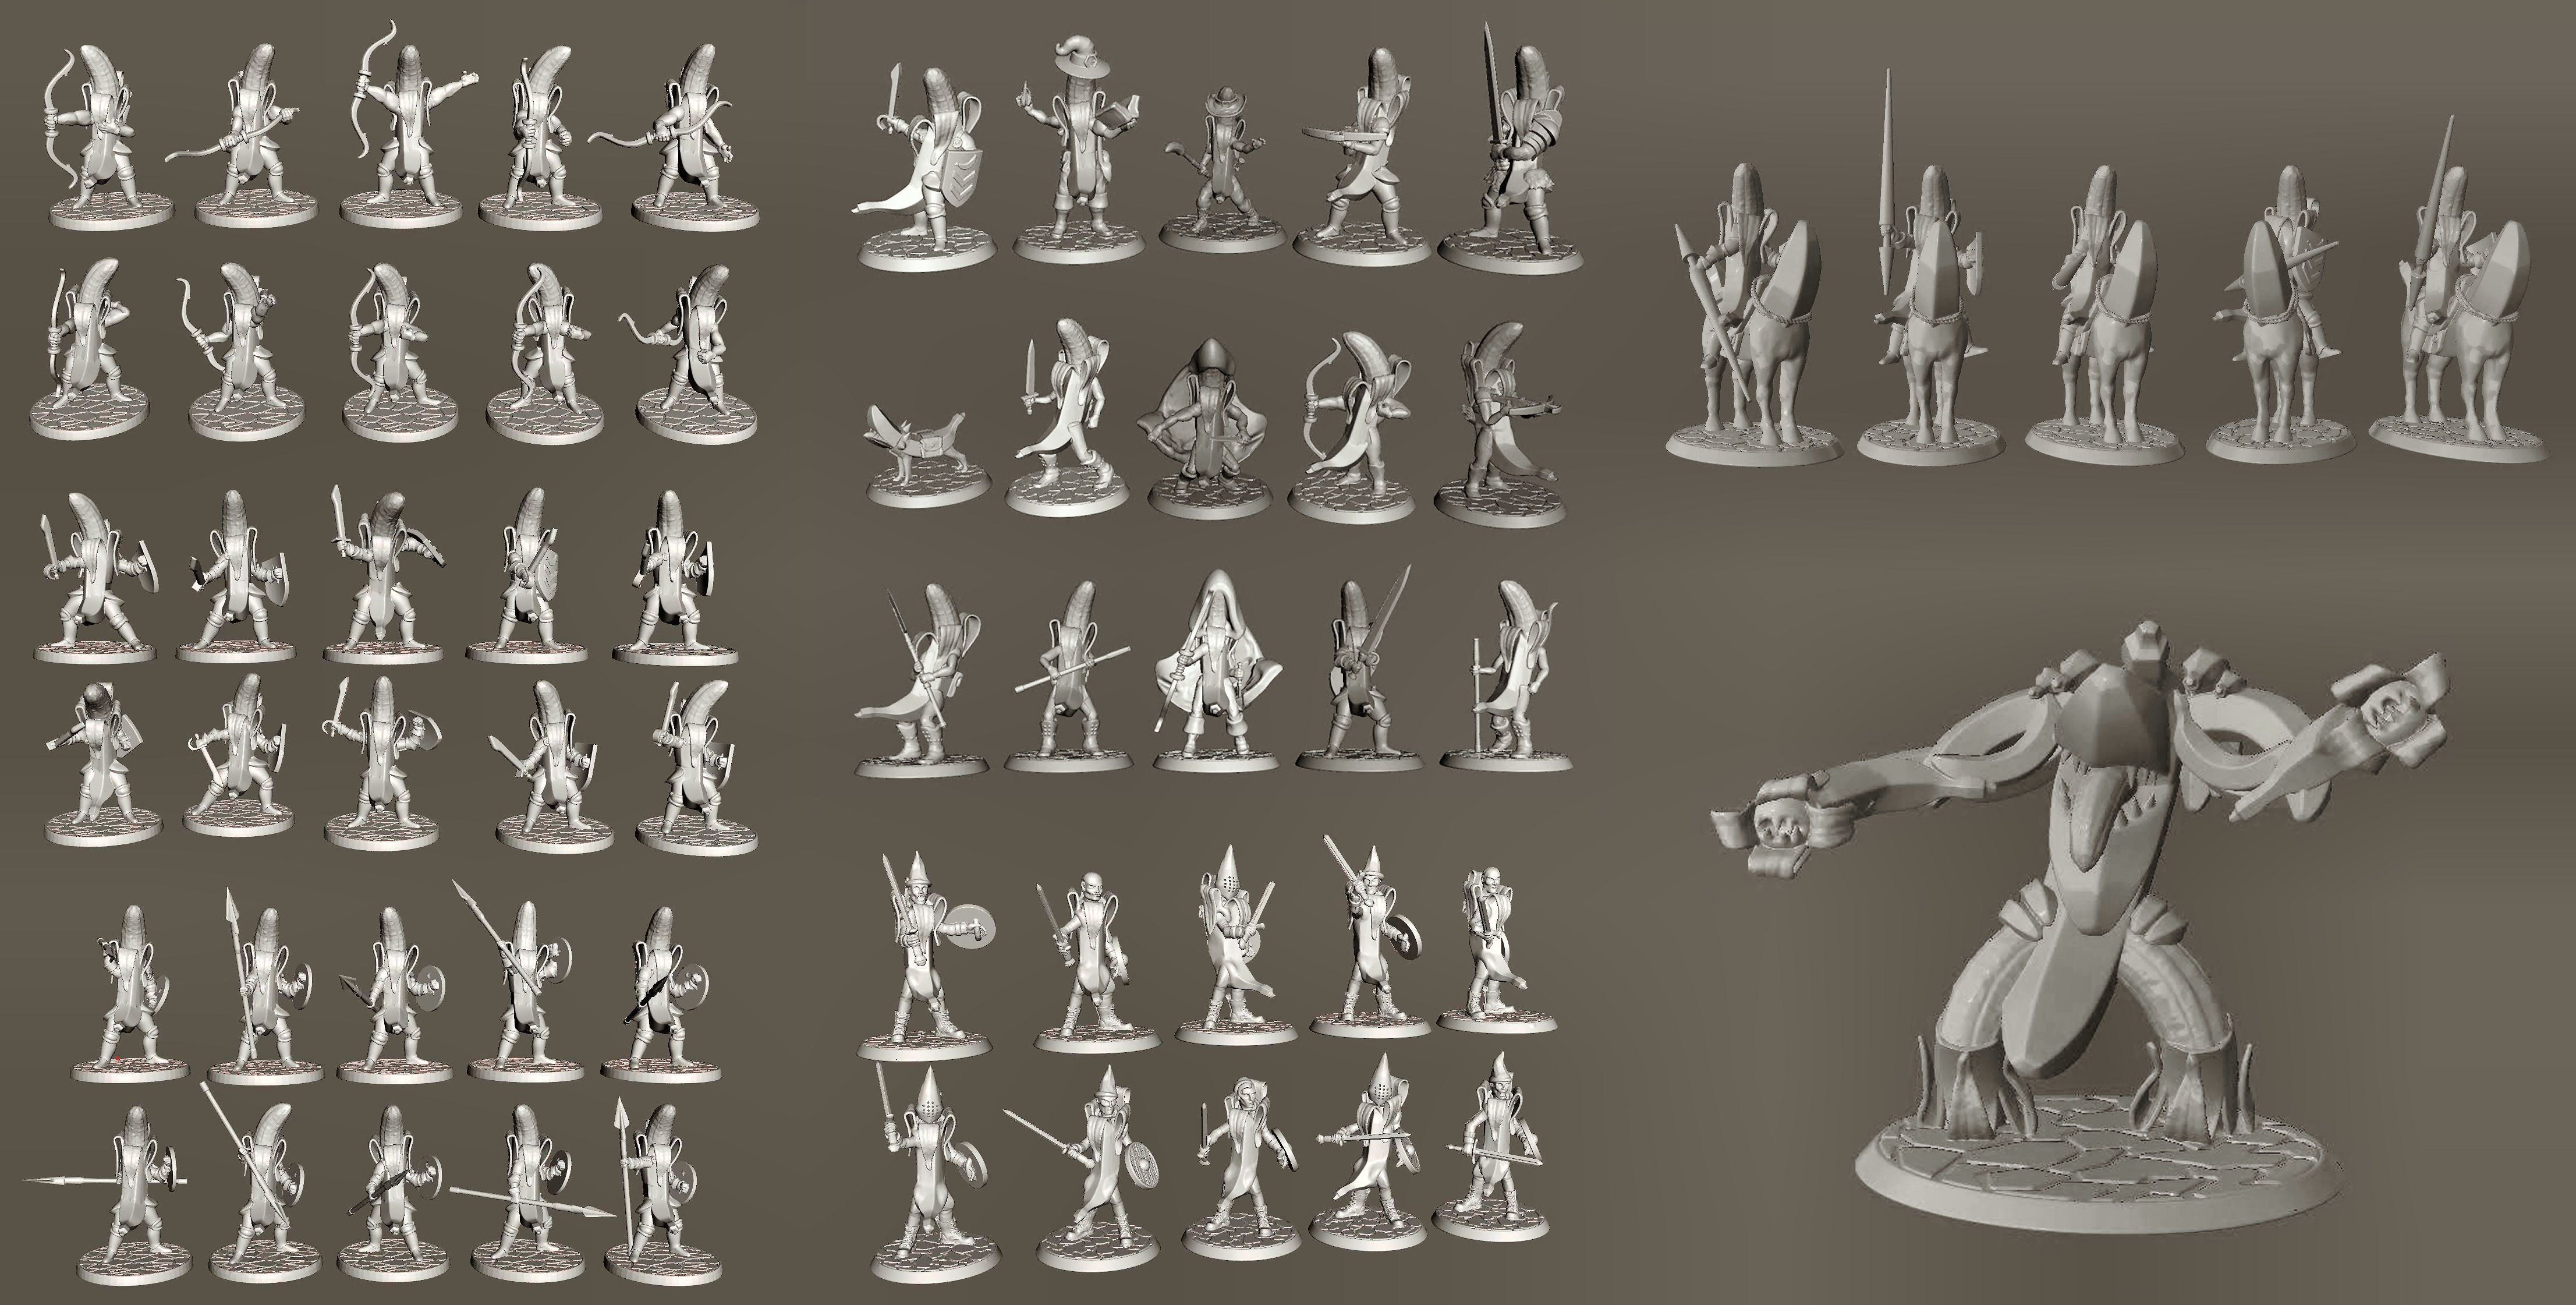 28mm Banana Knight Army - 61 Unique Miniatures for Wargames